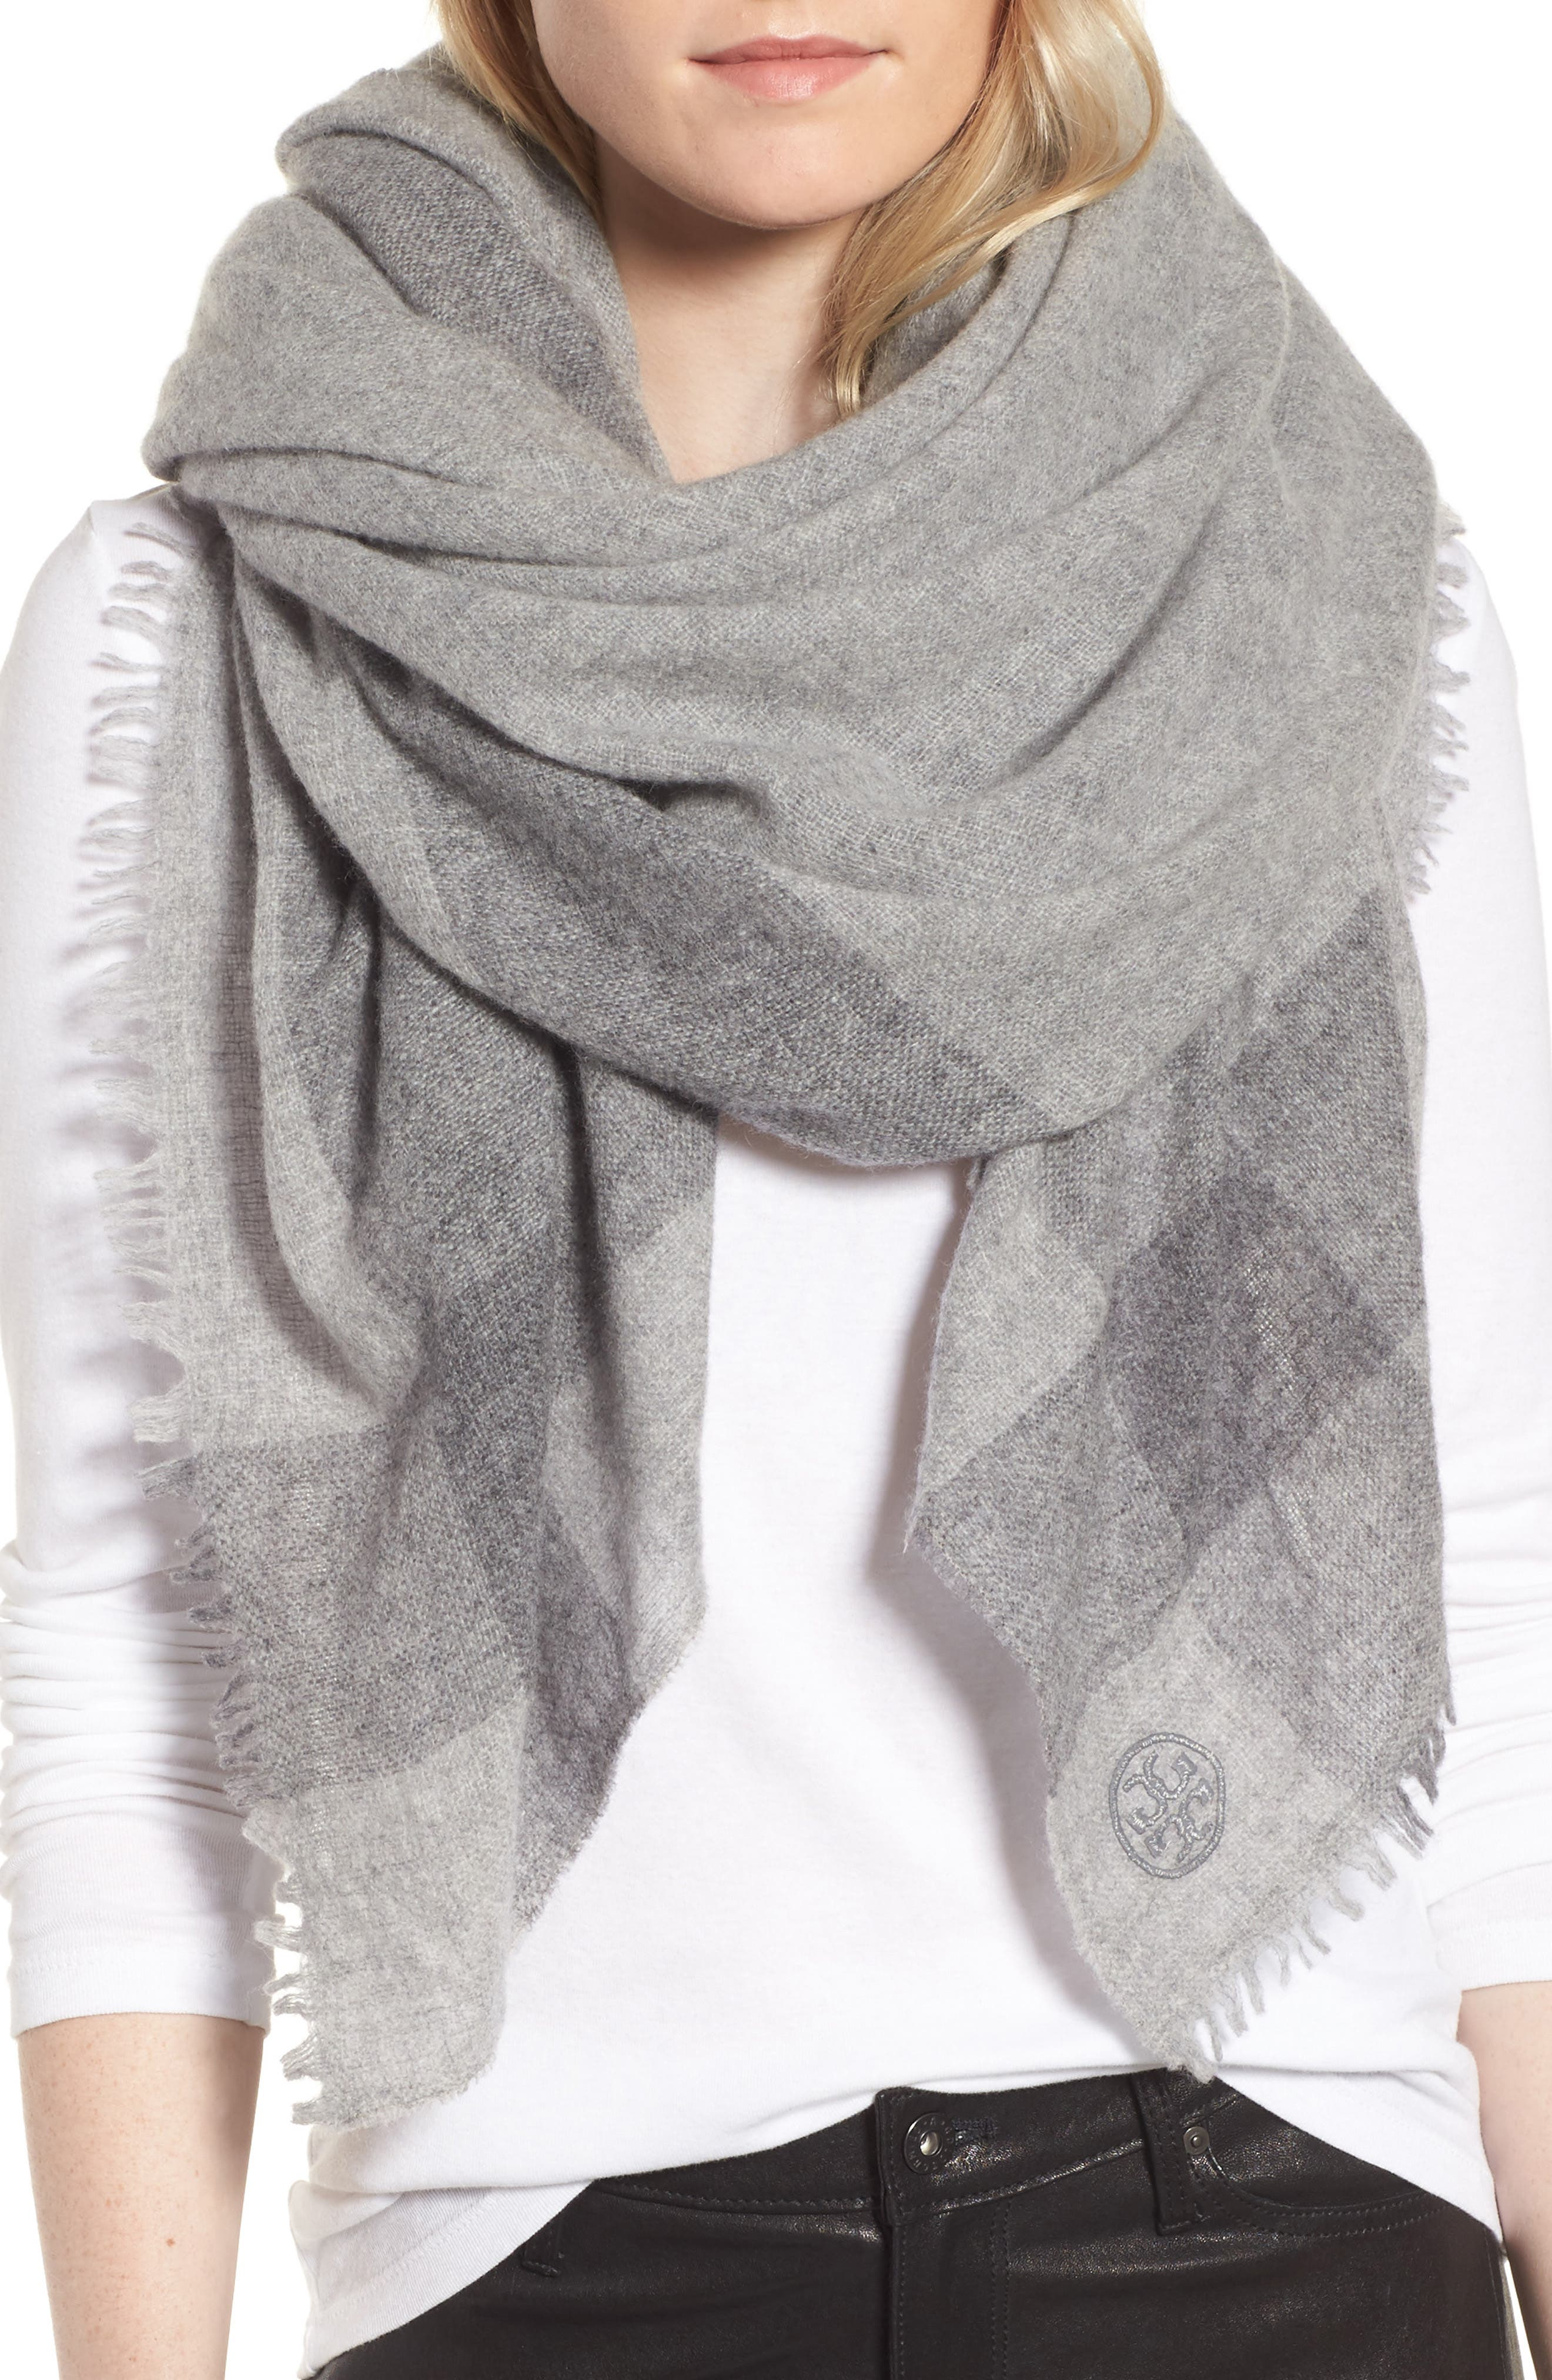 Check Wool & Cashmere Scarf,                             Main thumbnail 1, color,                             039